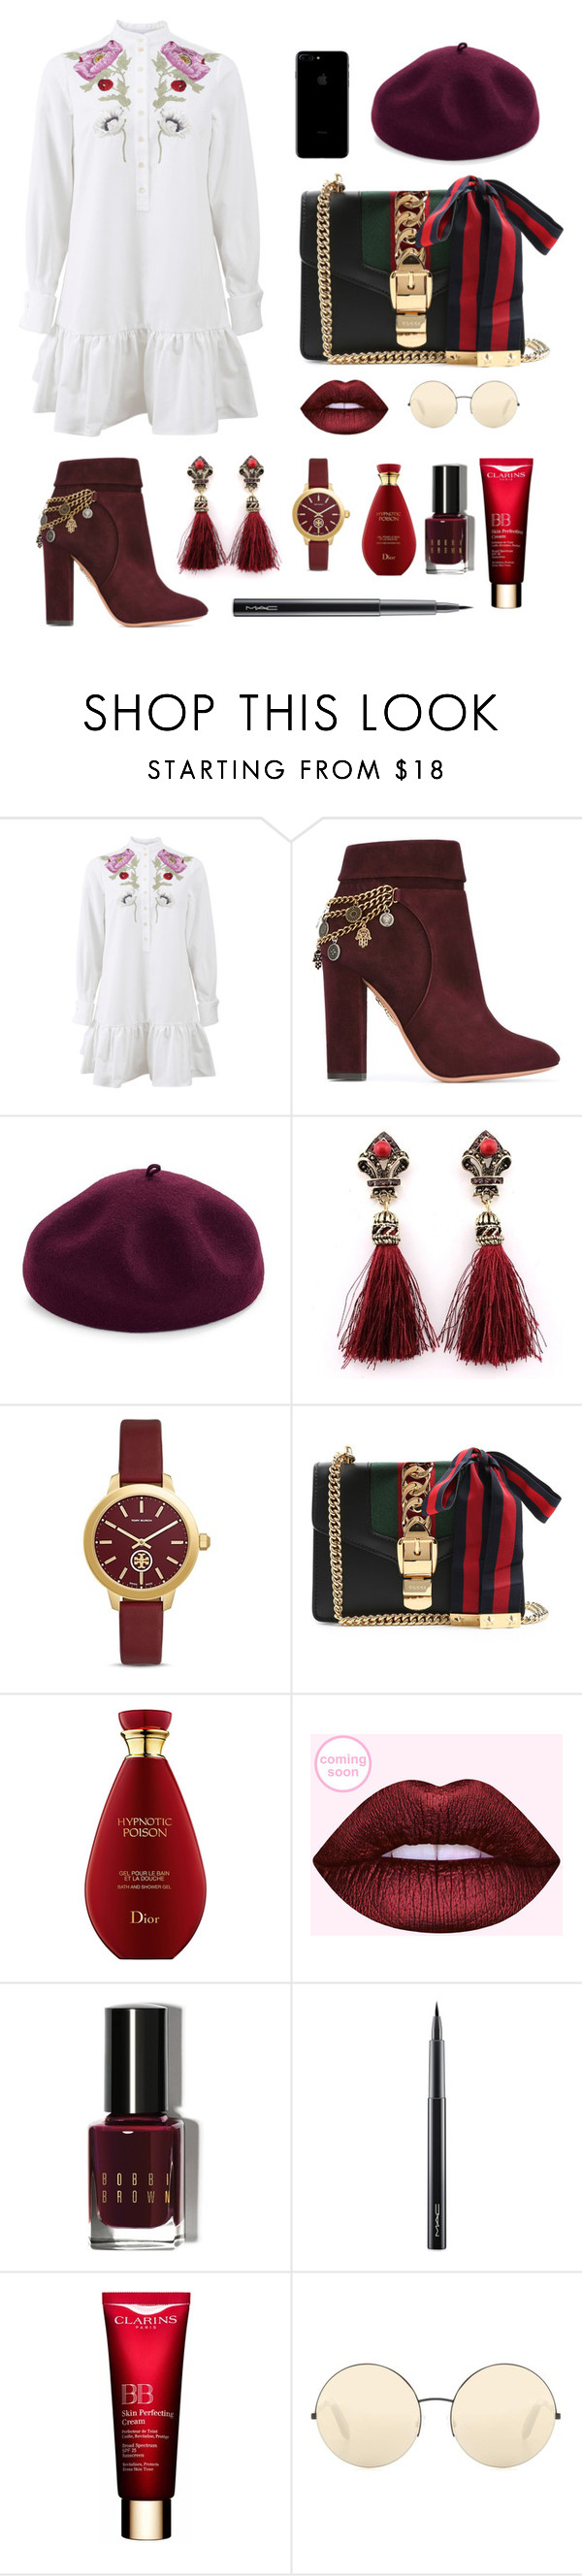 """NYFWSTYLE"" by thisisfashionguide ❤ liked on Polyvore featuring Alexander McQueen, Aquazzura, Kathy Jeanne, Tory Burch, Gucci, Bobbi Brown Cosmetics, MAC Cosmetics and Victoria Beckham"